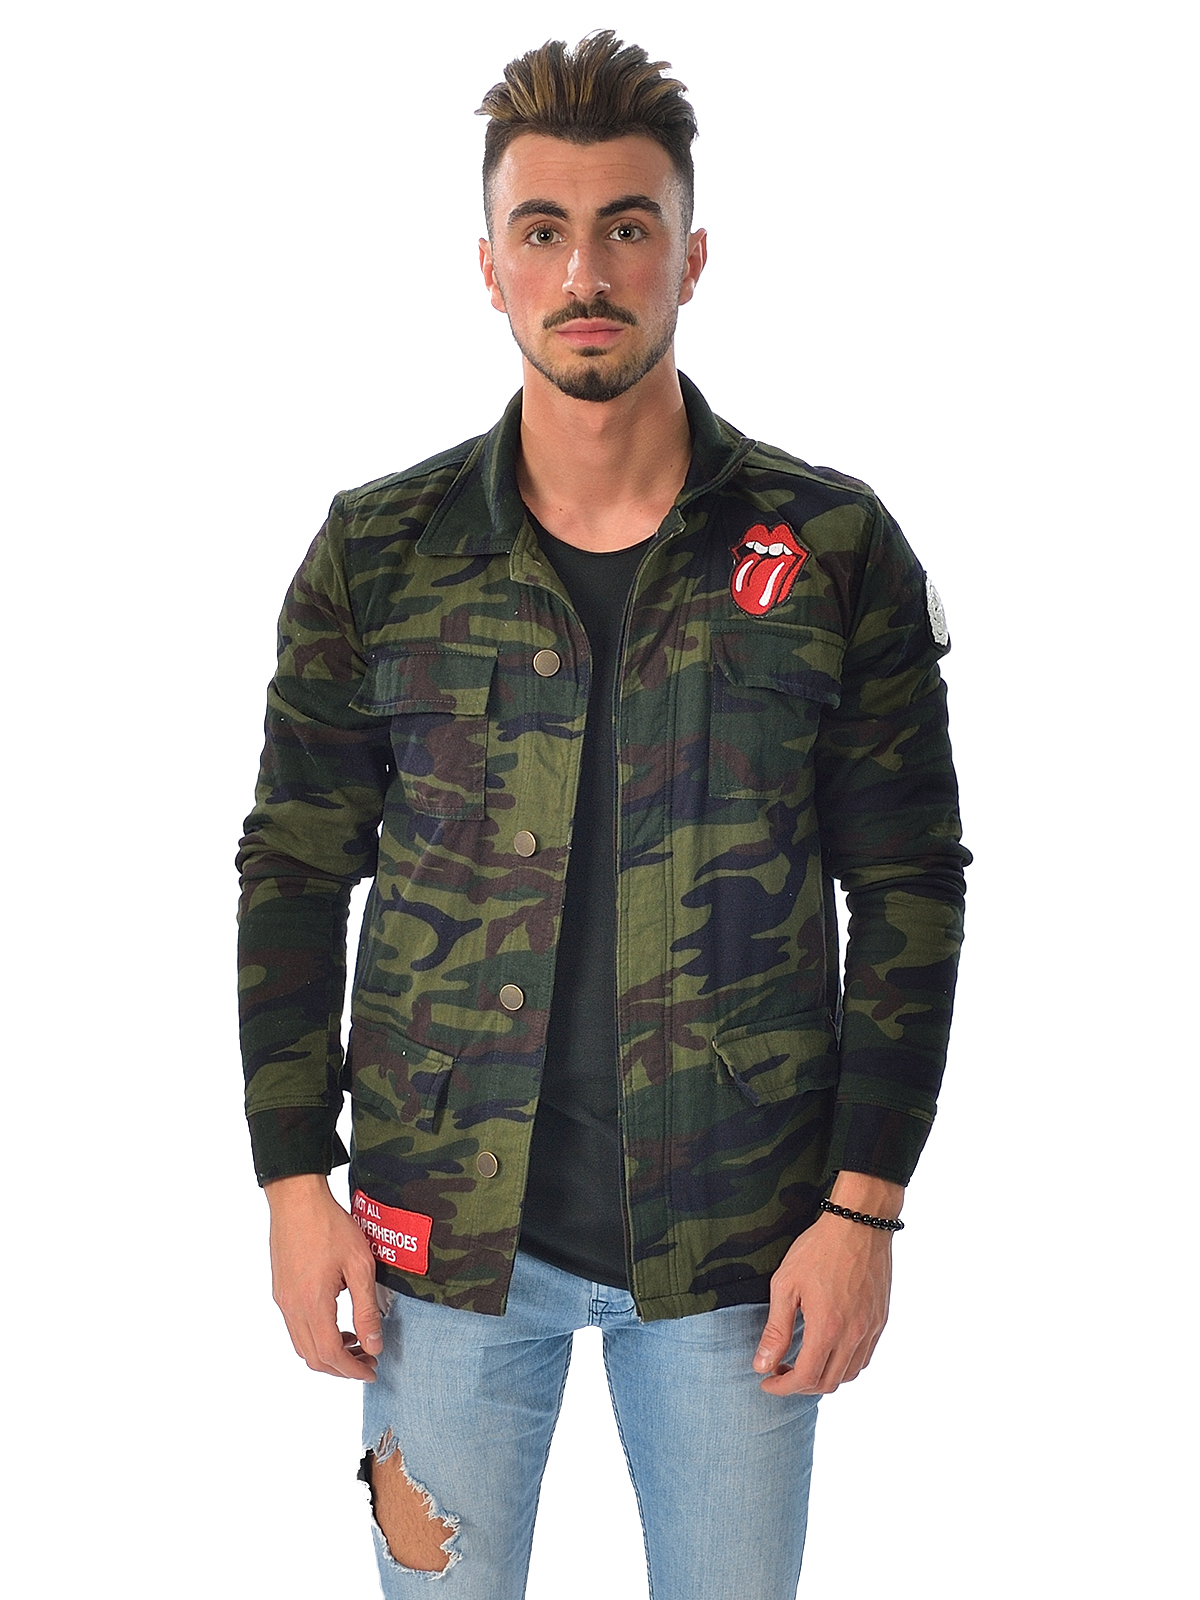 Find camouflage blazer men at ShopStyle. Shop the latest collection of camouflage blazer men from the most popular stores - all in one place.